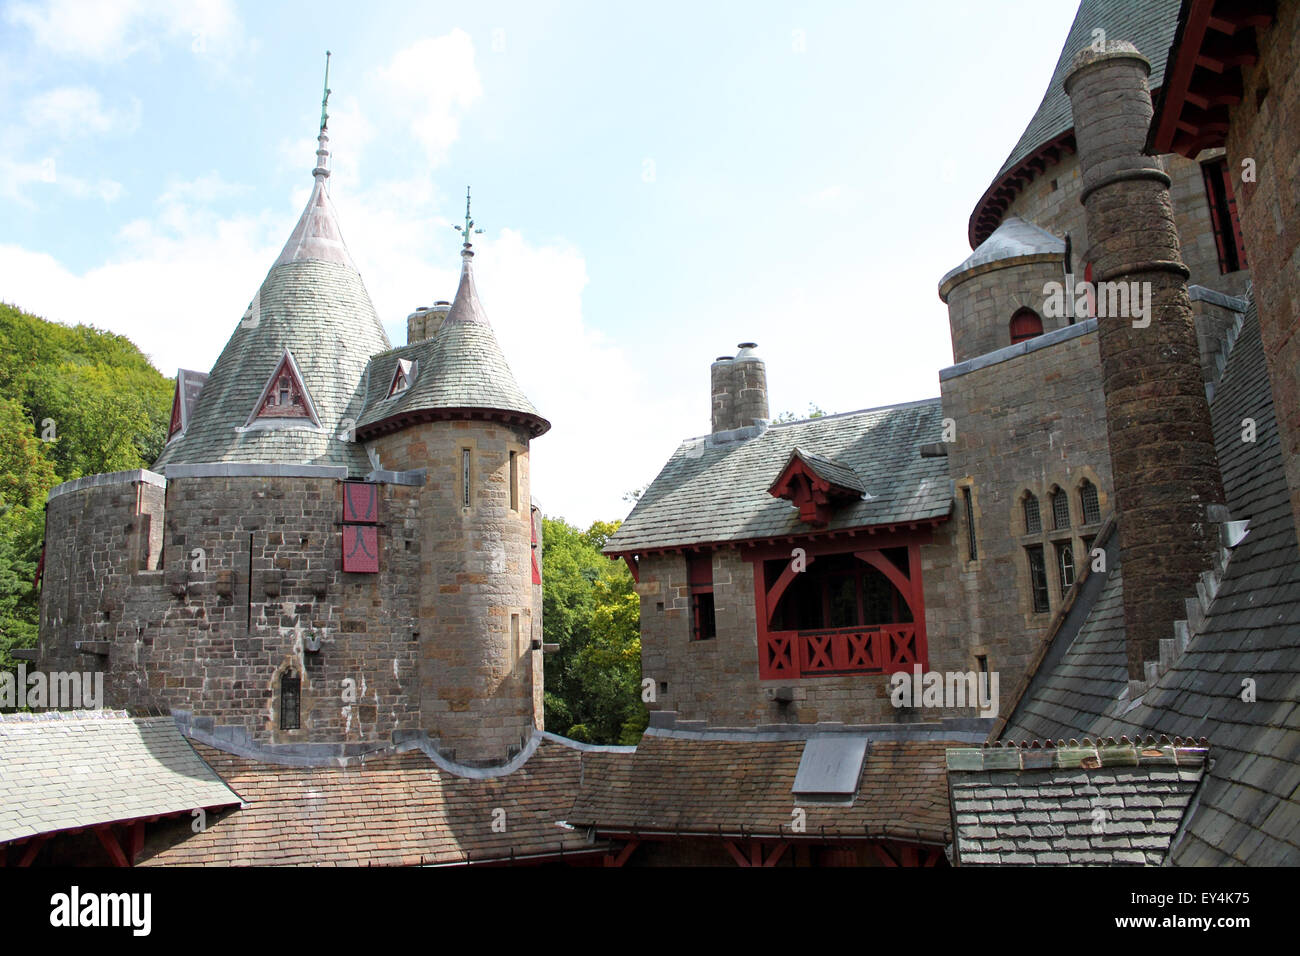 Interior courtyard of Castle or Castell Coch, Cardiff, South Wales, UK - Stock Image